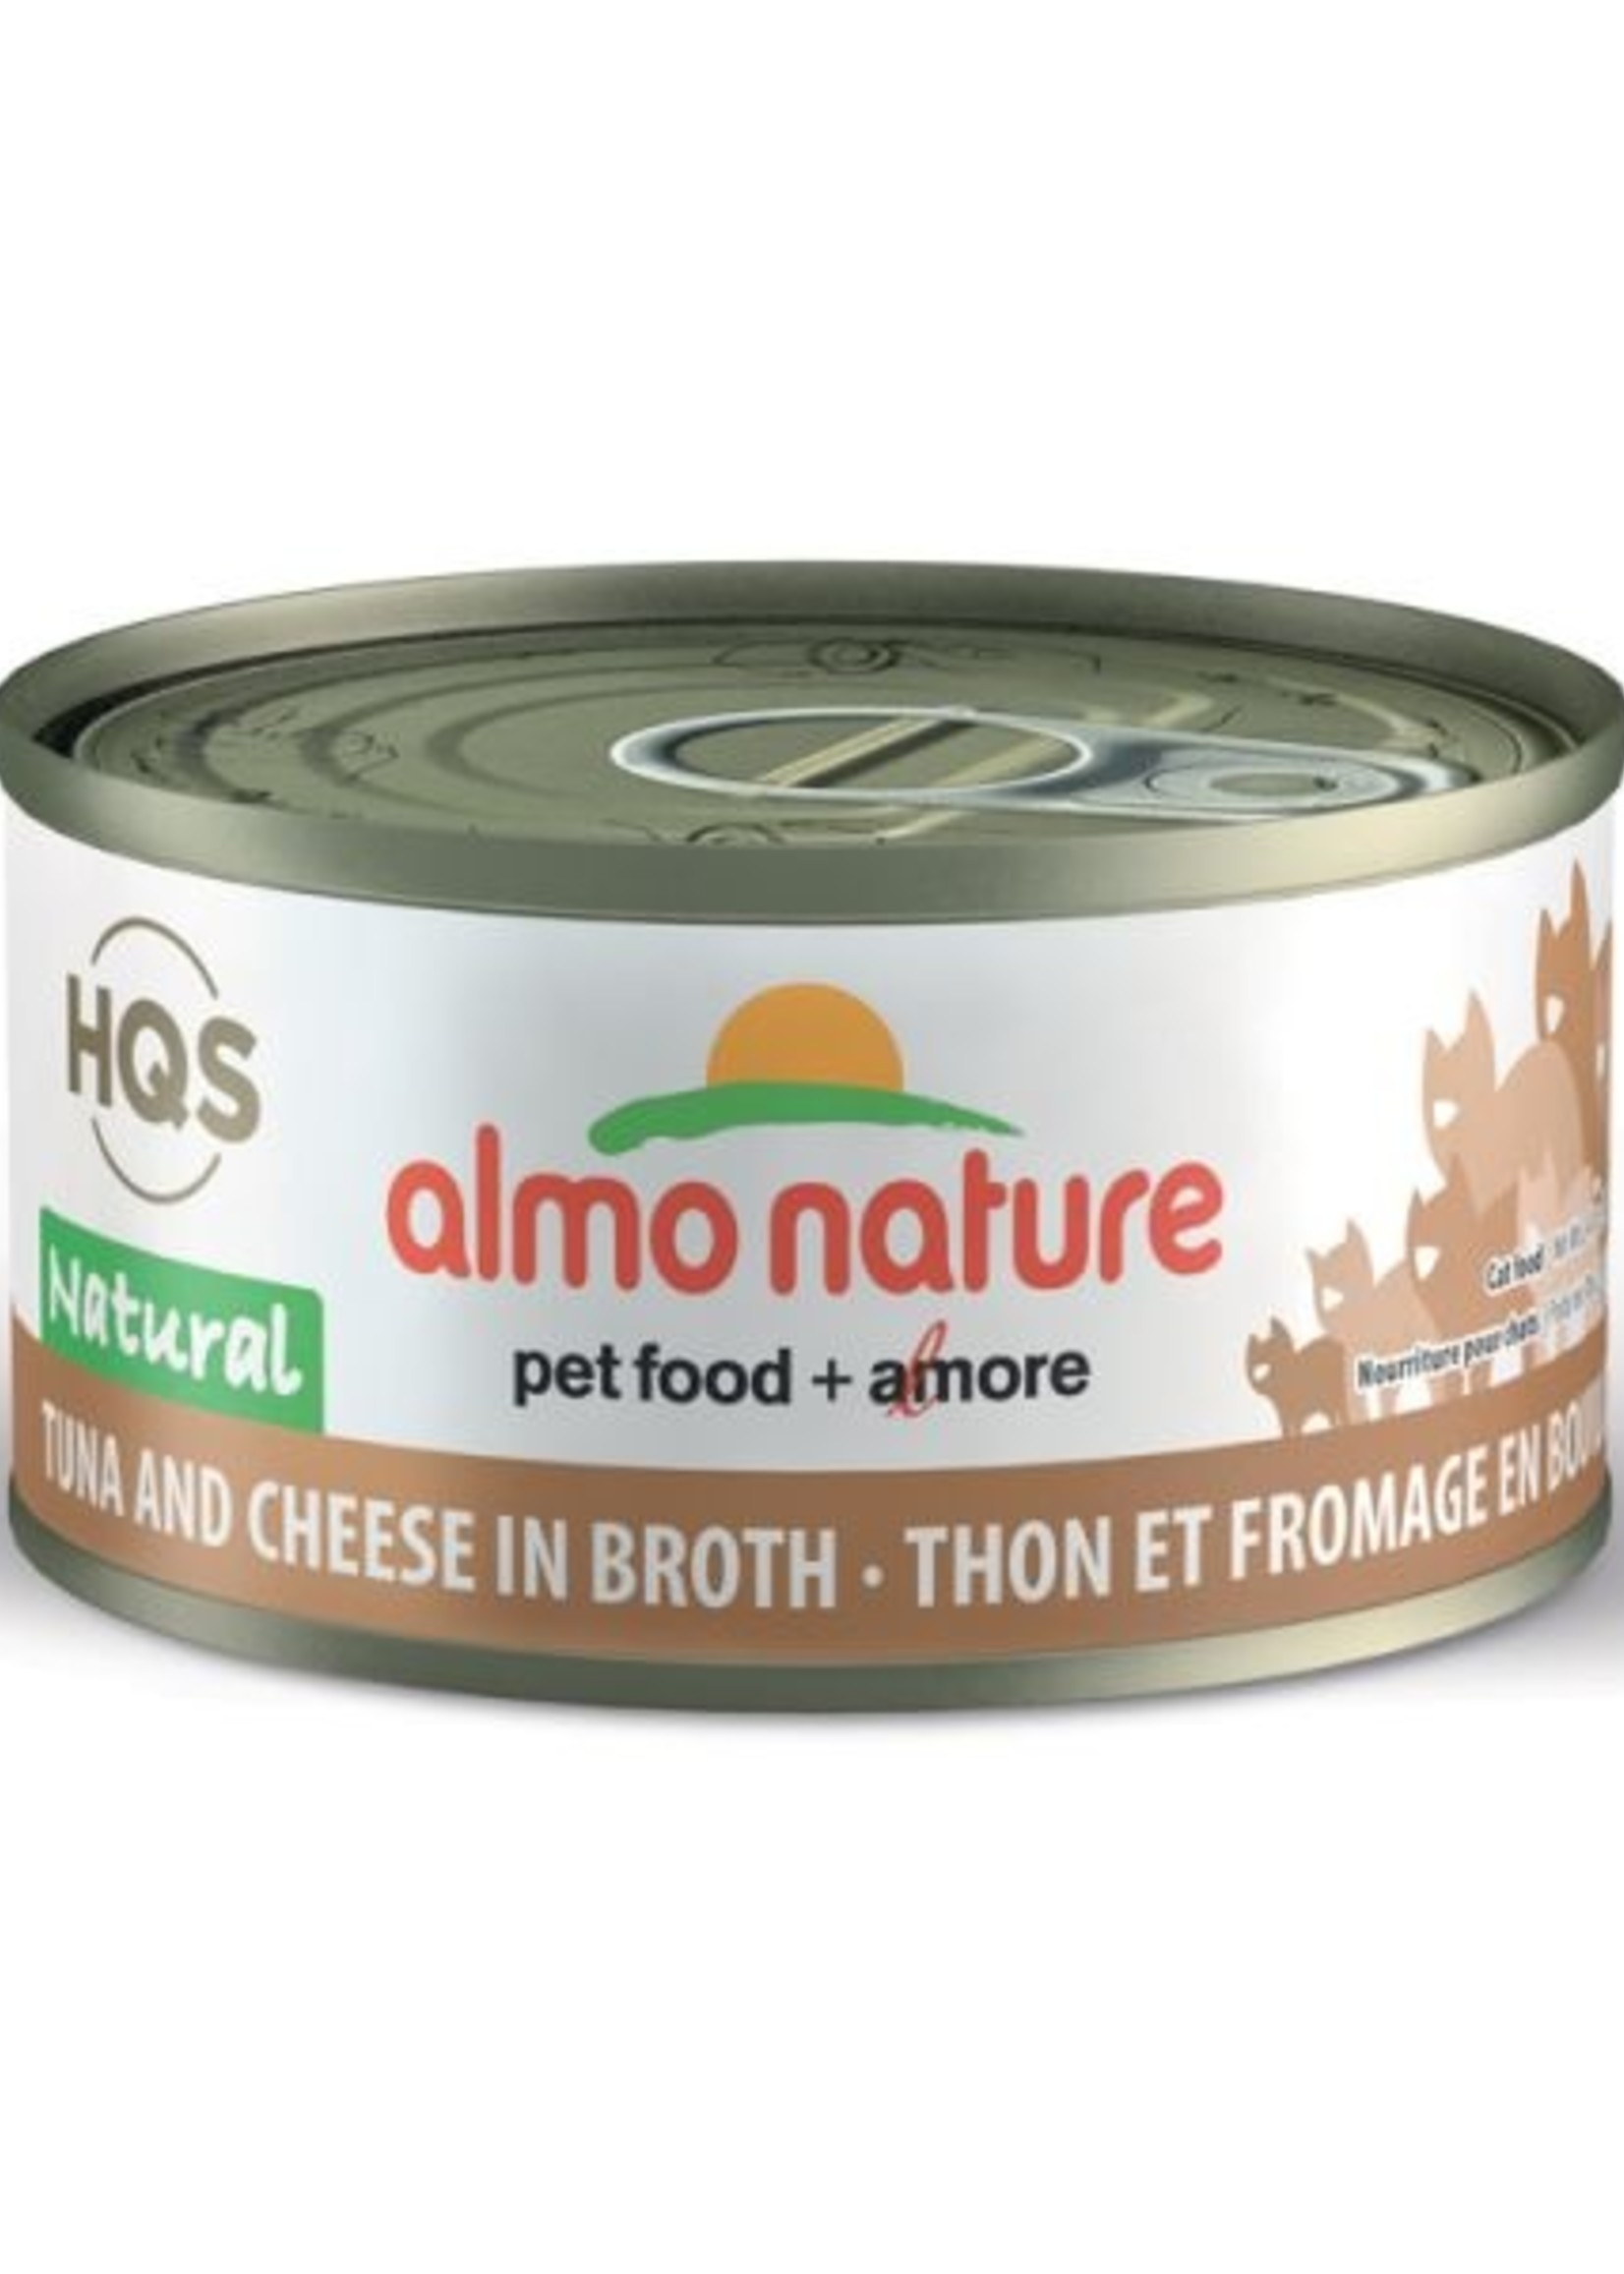 Almo Nature© Almo Nature HQS Natural Tuna and Cheese in Broth 70g